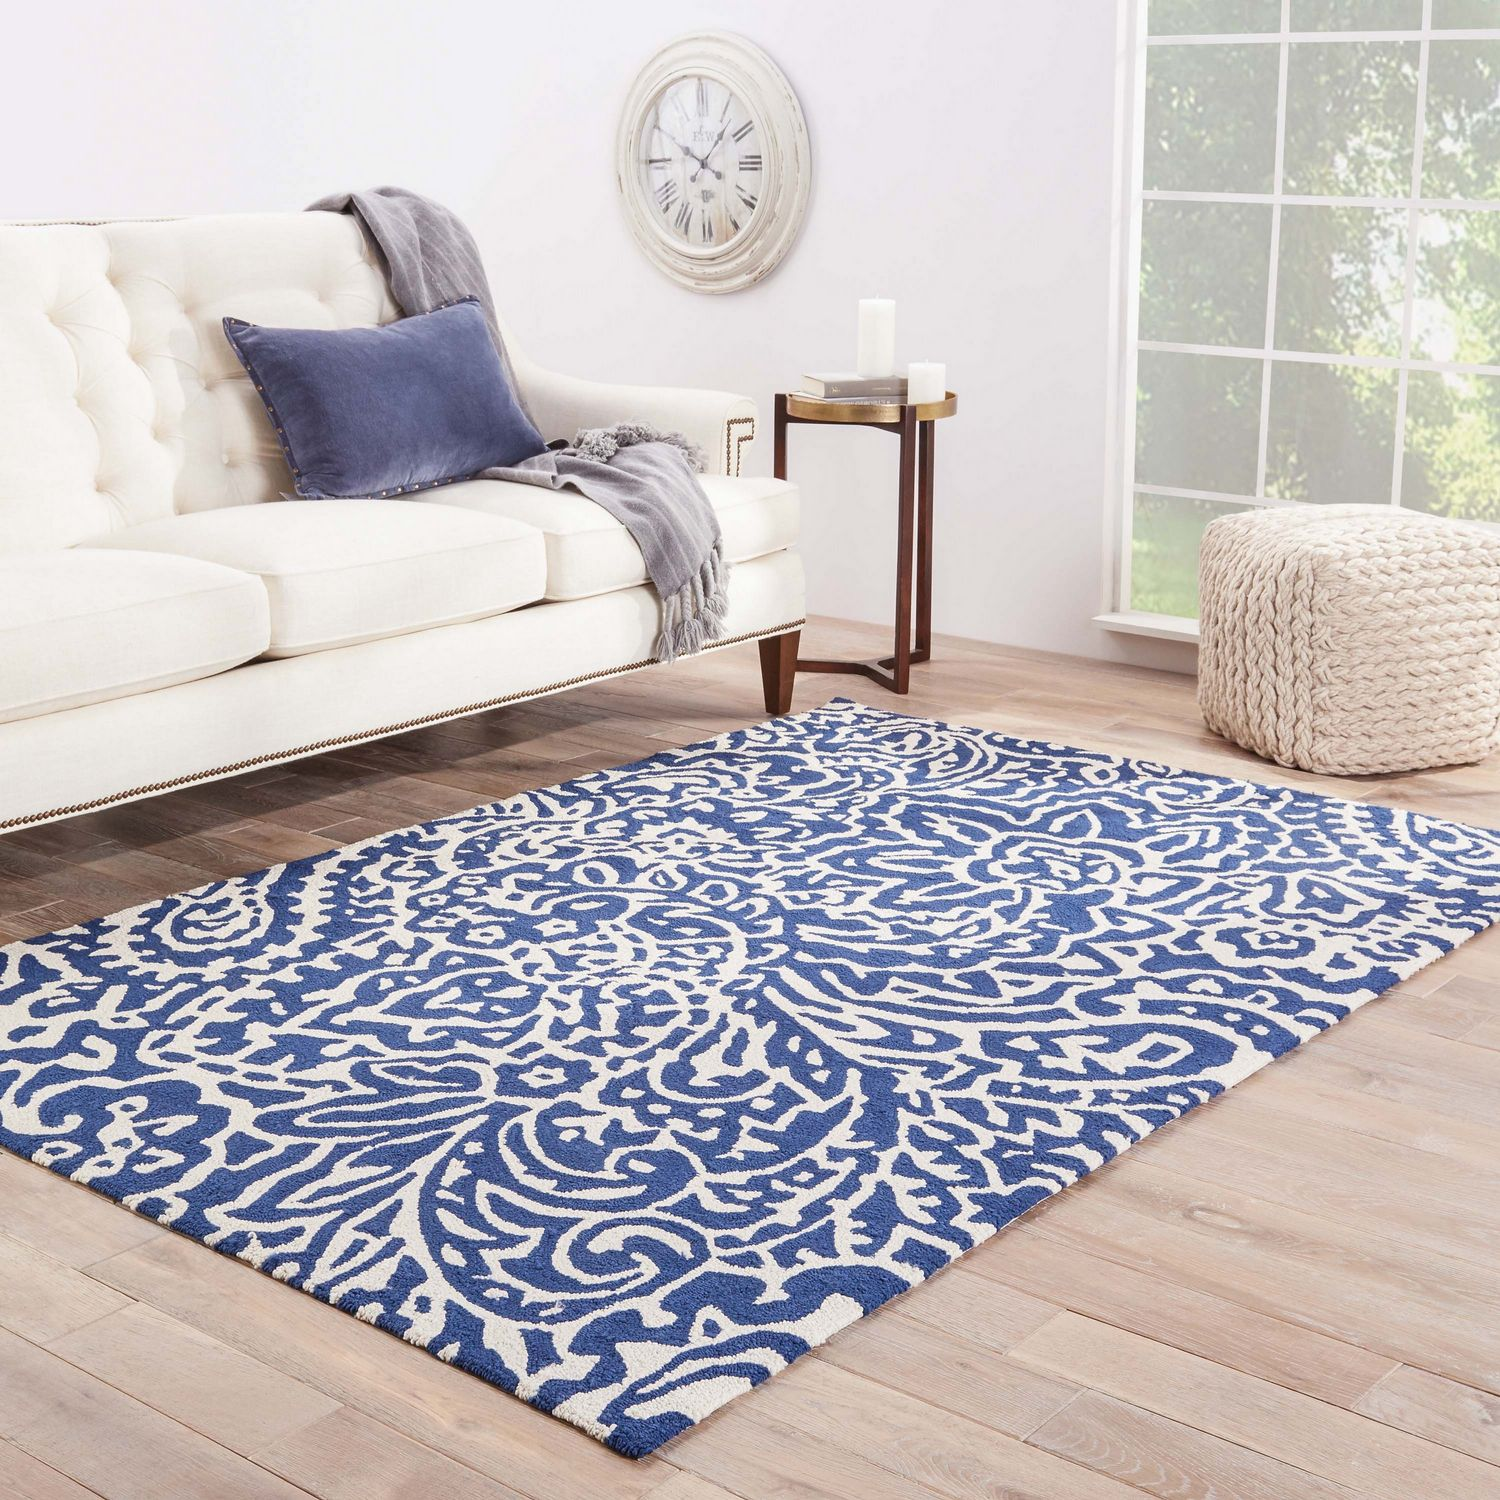 Jaipur living rugs ba03 barcelona iiso collection 100 for Blue and white carpet